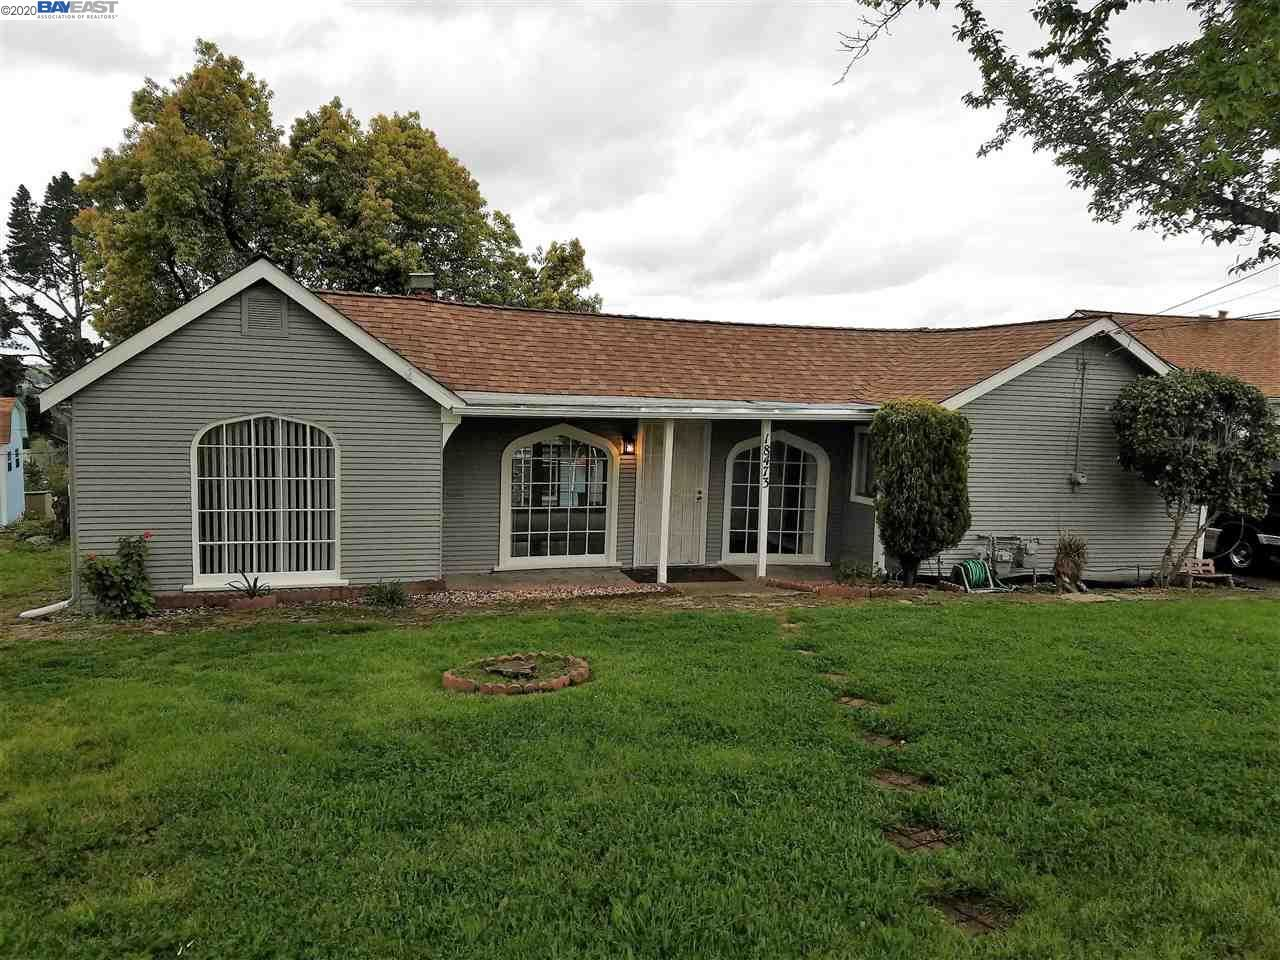 Photo for 18473 Apricot Way, CASTRO VALLEY, CA 94546 (MLS # 40921043)